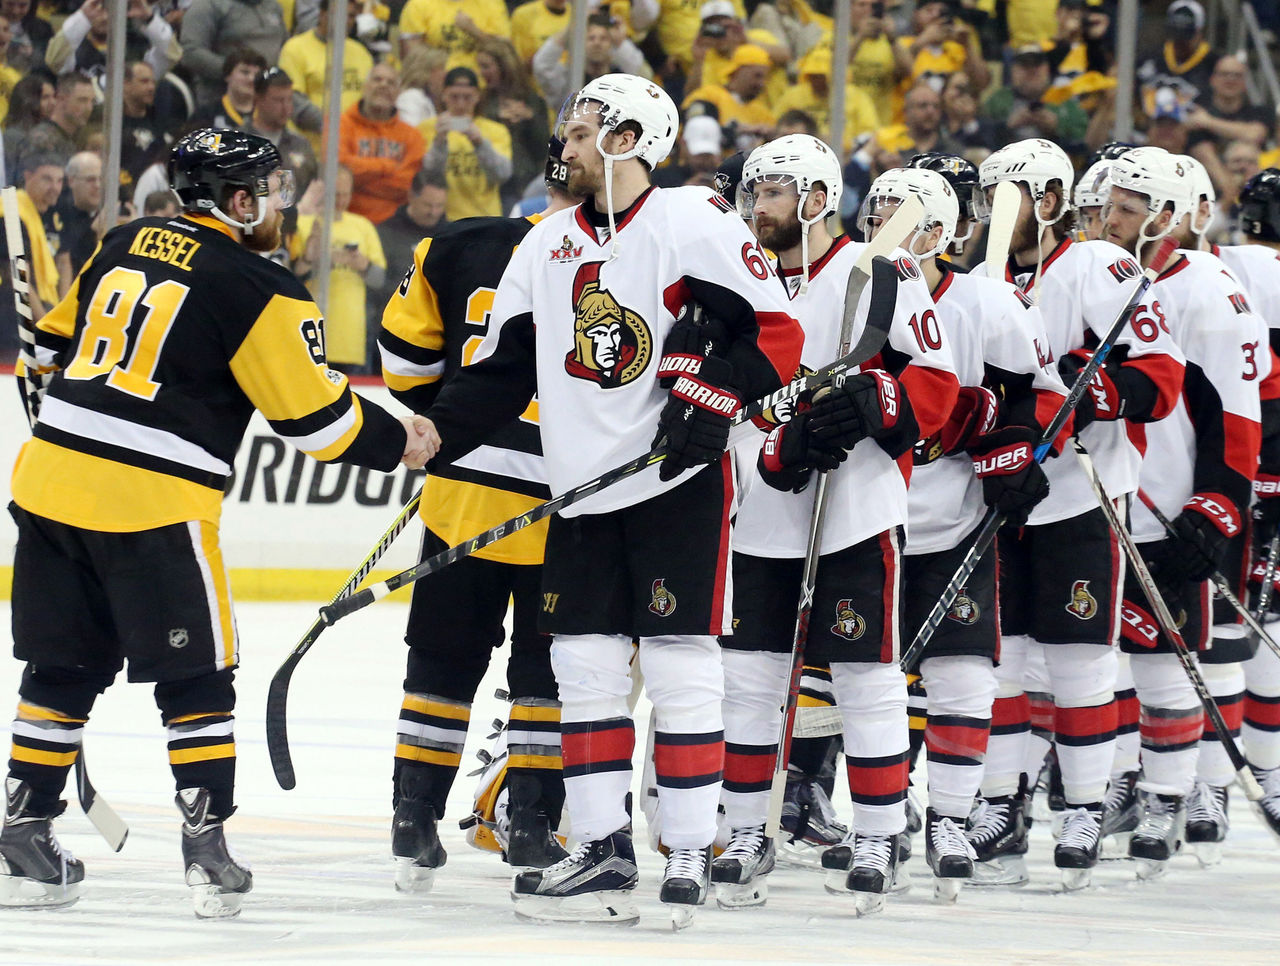 Cropped_2017-05-26t043146z_1243202650_nocid_rtrmadp_3_nhl-stanley-cup-playoffs-ottawa-senators-at-pittsburgh-penguins